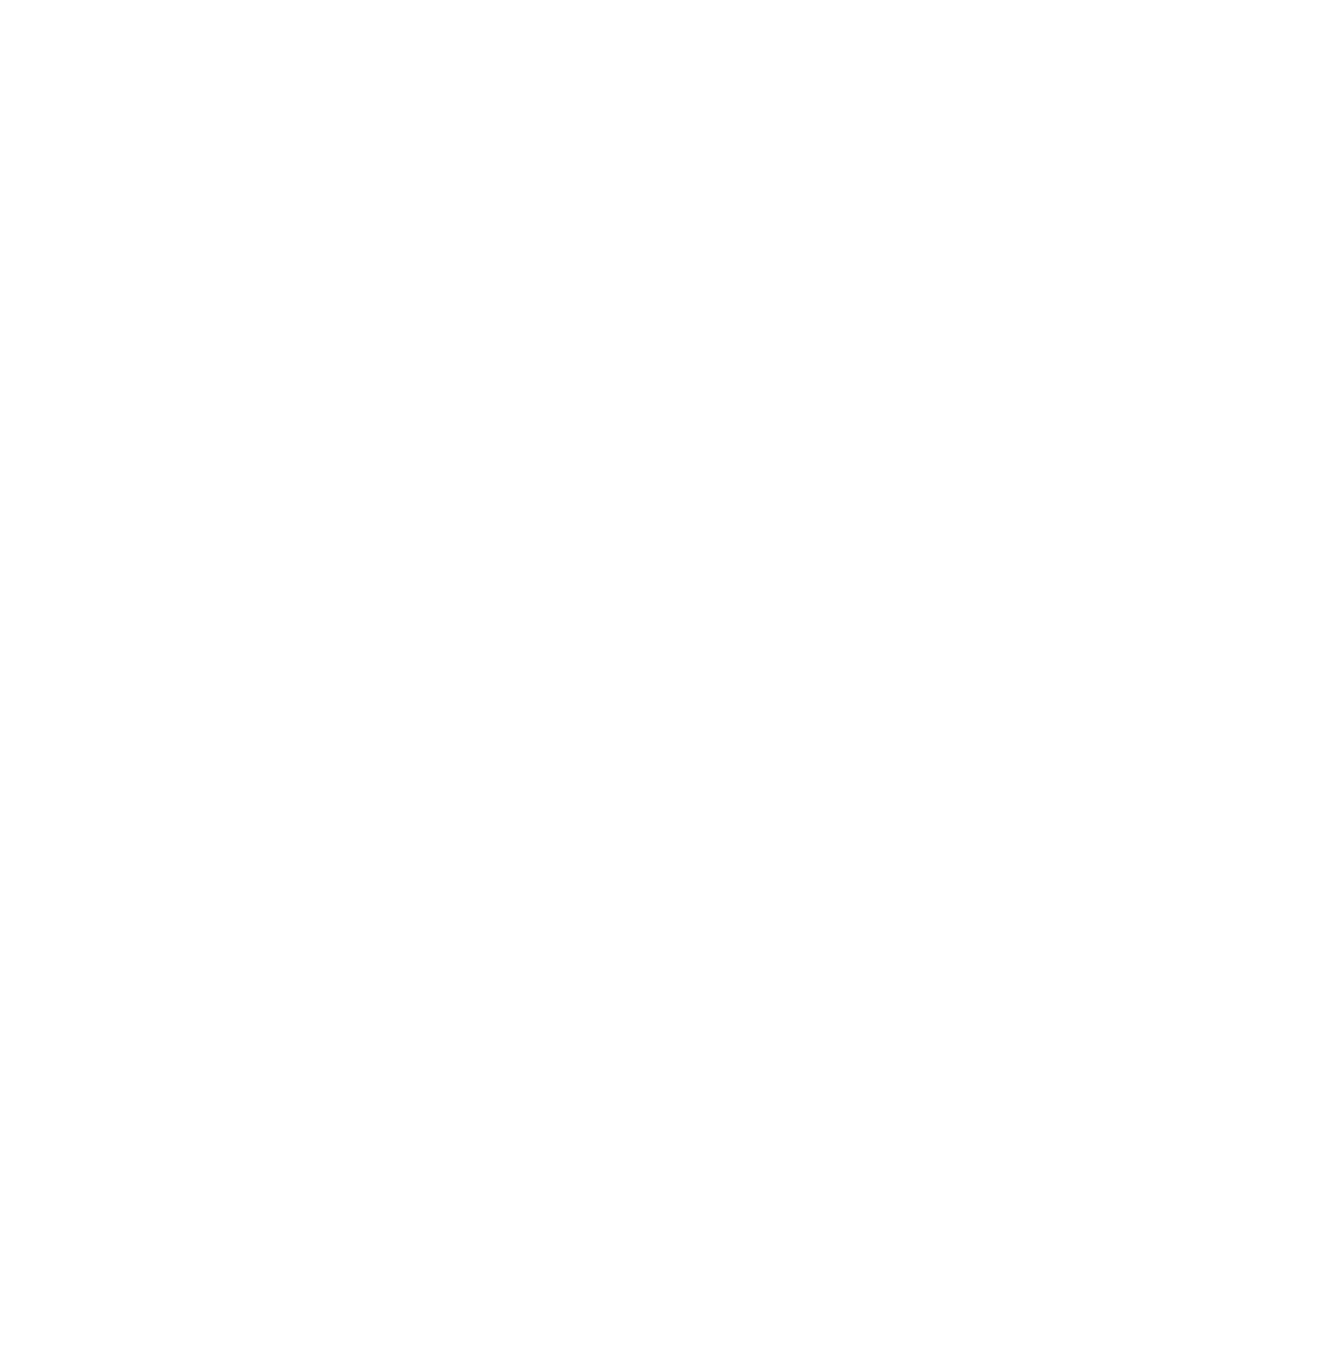 JEFFREYCWILLIAMS